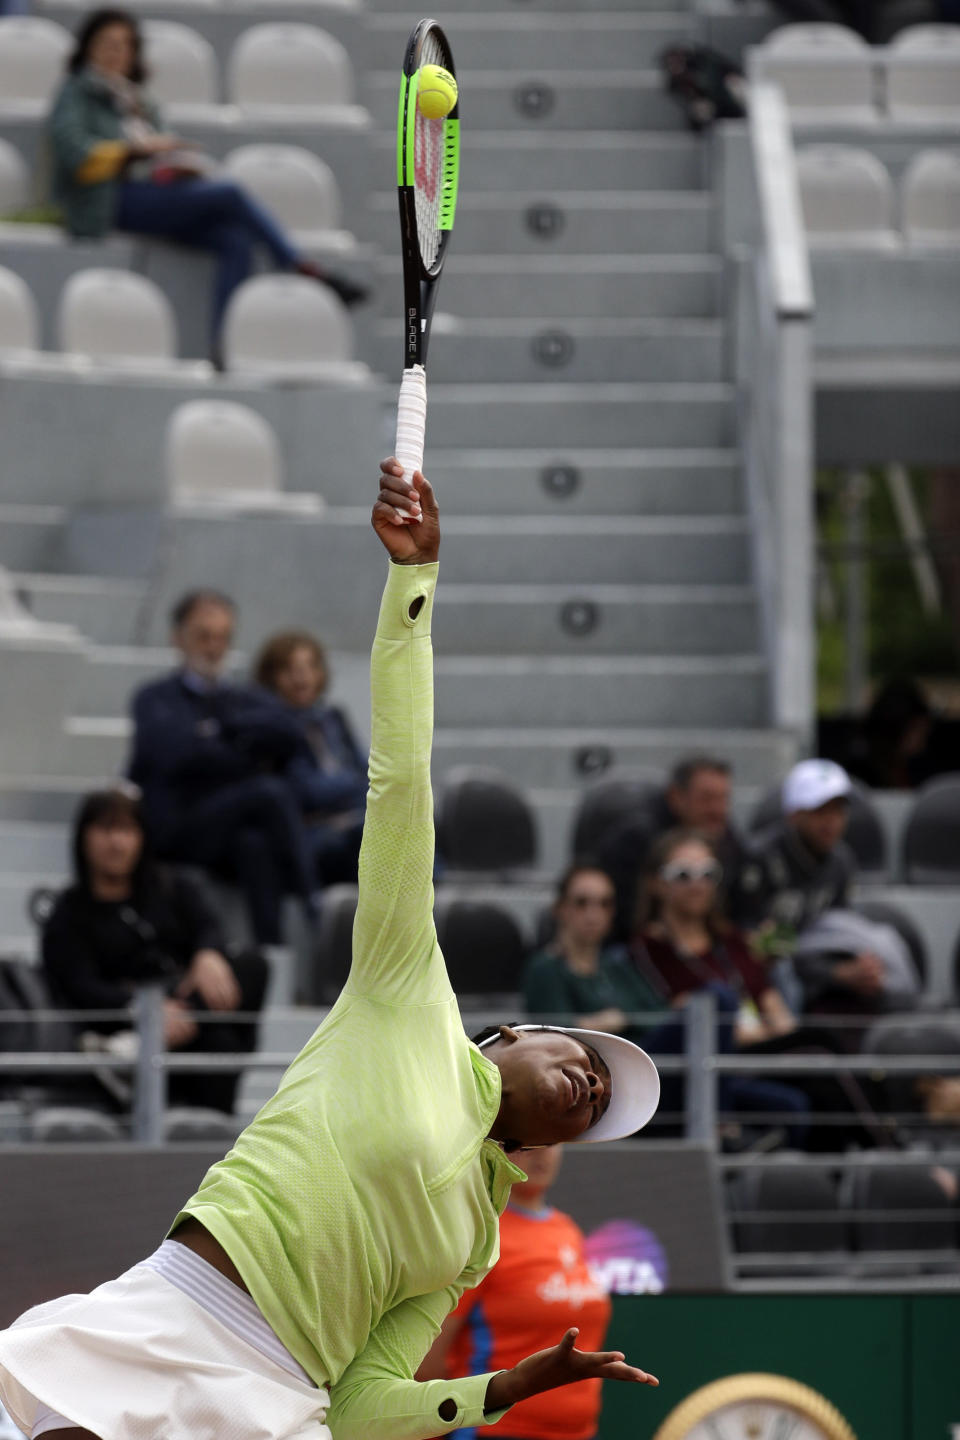 Venus Williams, of the United States, serves the ball during her match against Belgium's Elise Mertens at the Italian Open tennis tournament, in Rome, Monday, May, 13, 2019. (AP Photo/Gregorio Borgia)